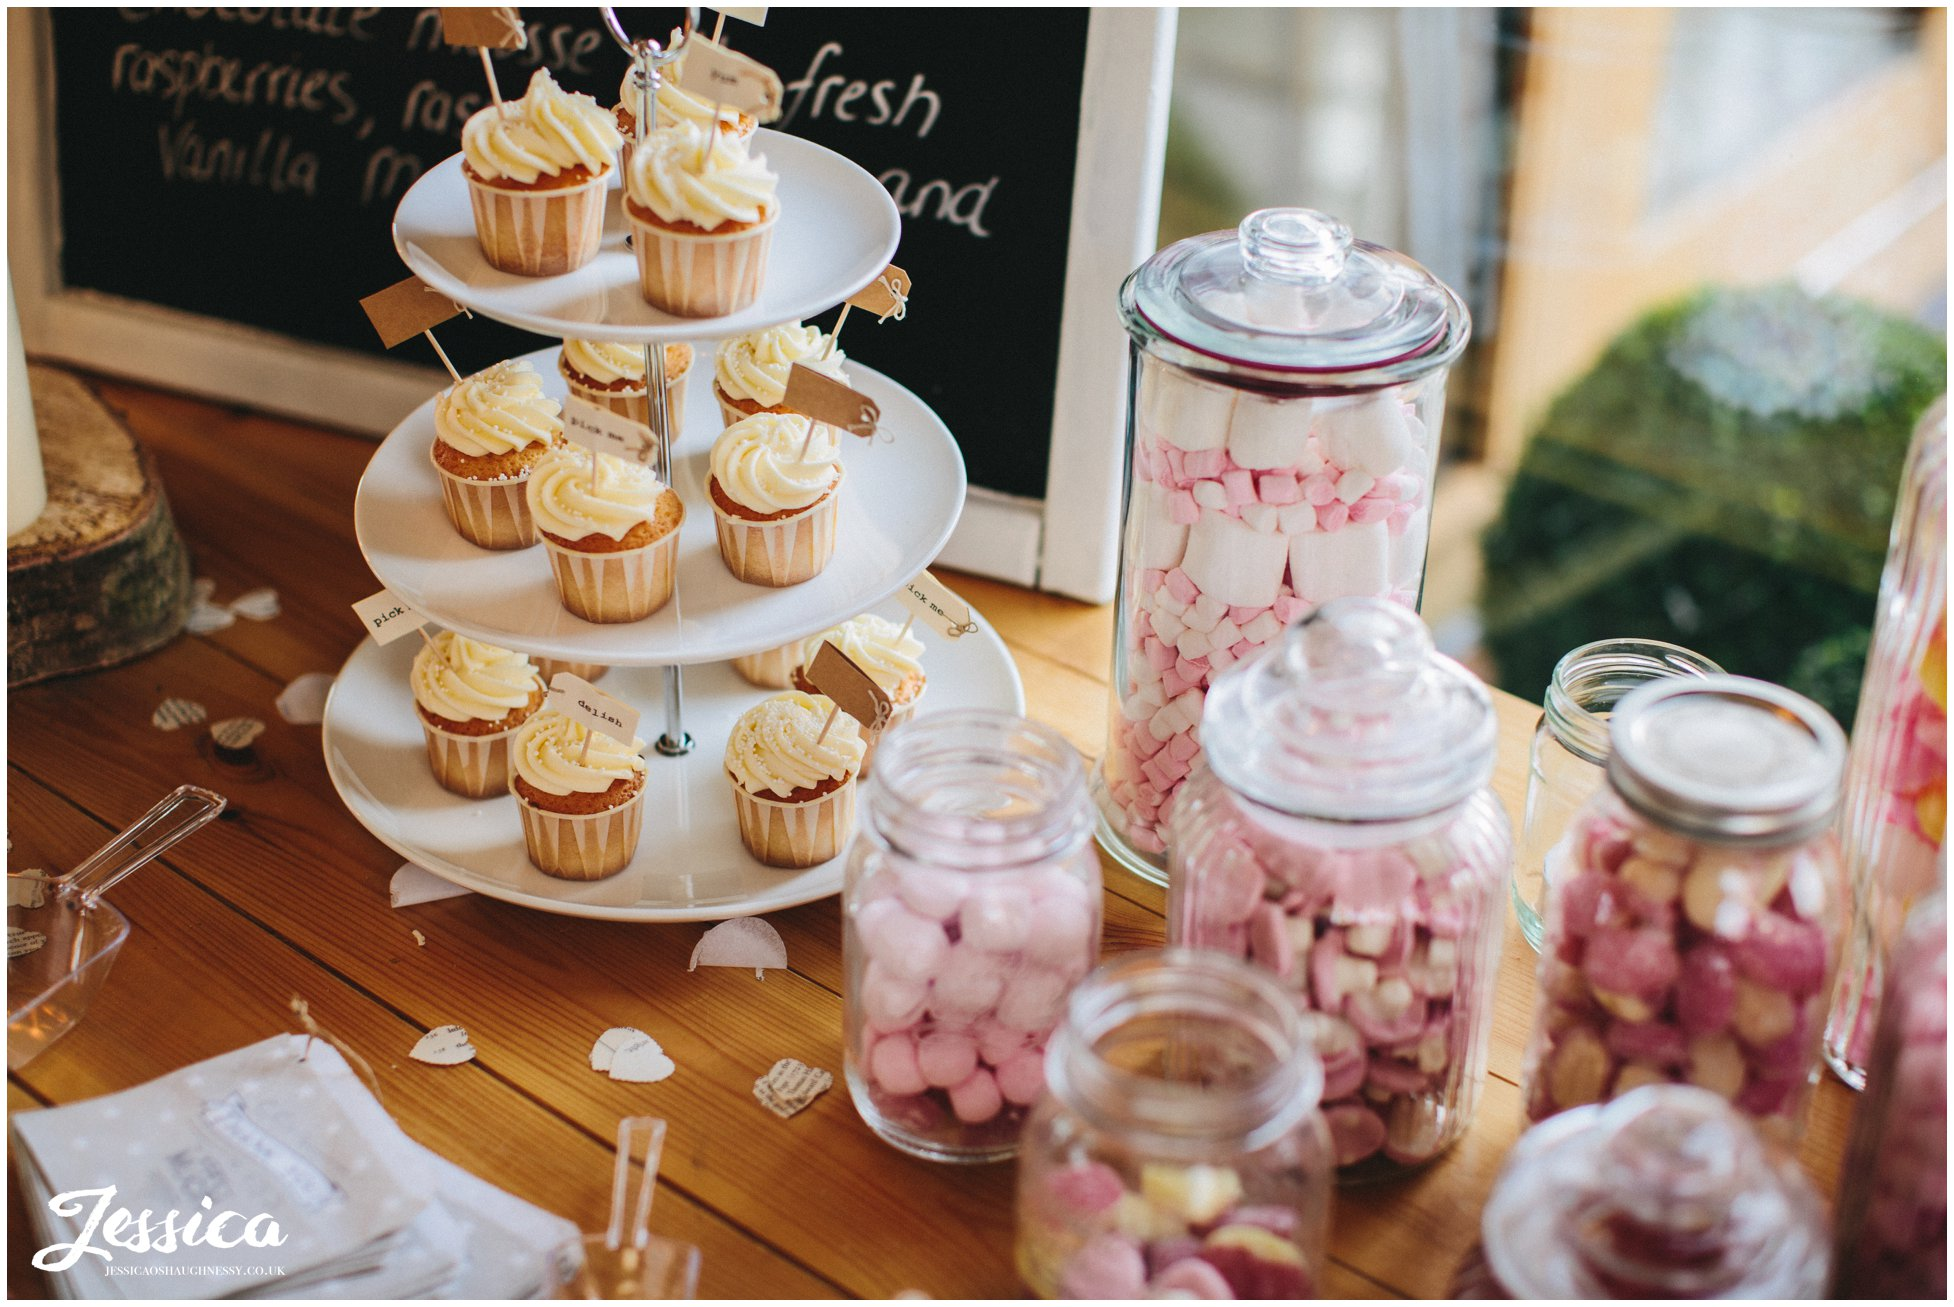 cupcakes provided for guests at the wedding reception in north wales